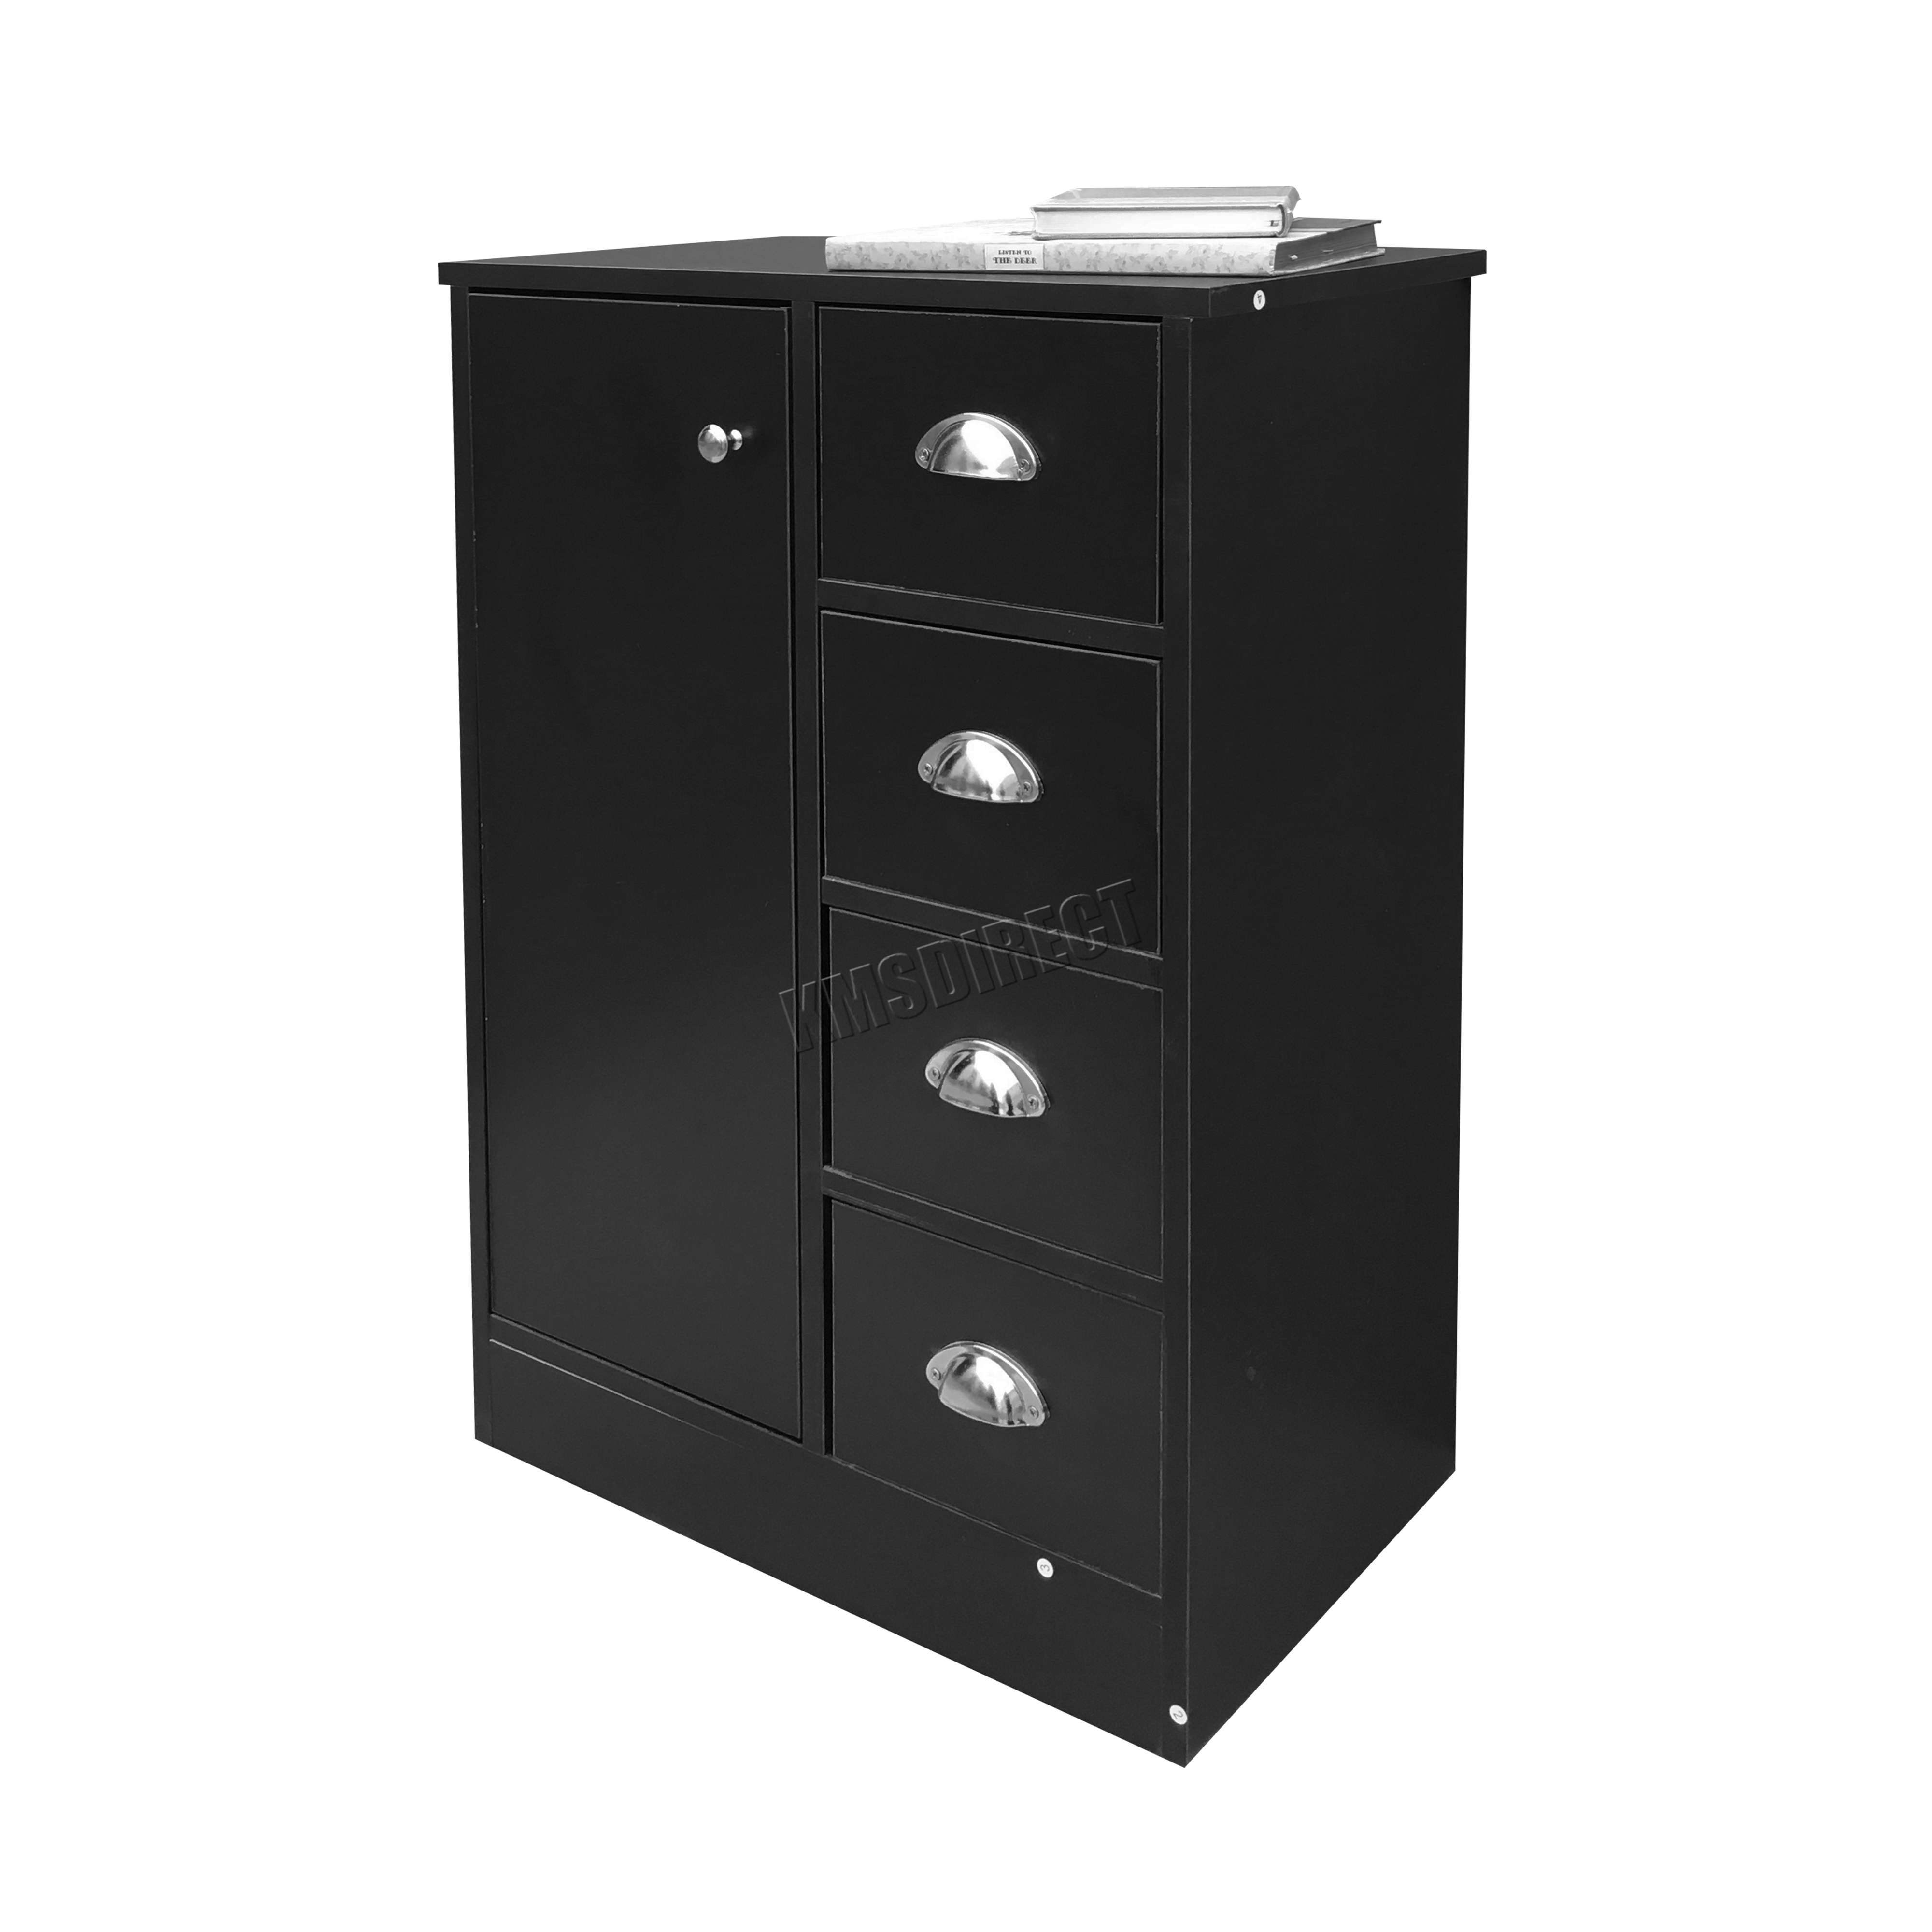 FoxHunter 4 Drawer 2 Shelves Bathroom Storage Cupboard Cabinet Unit BS03 Black